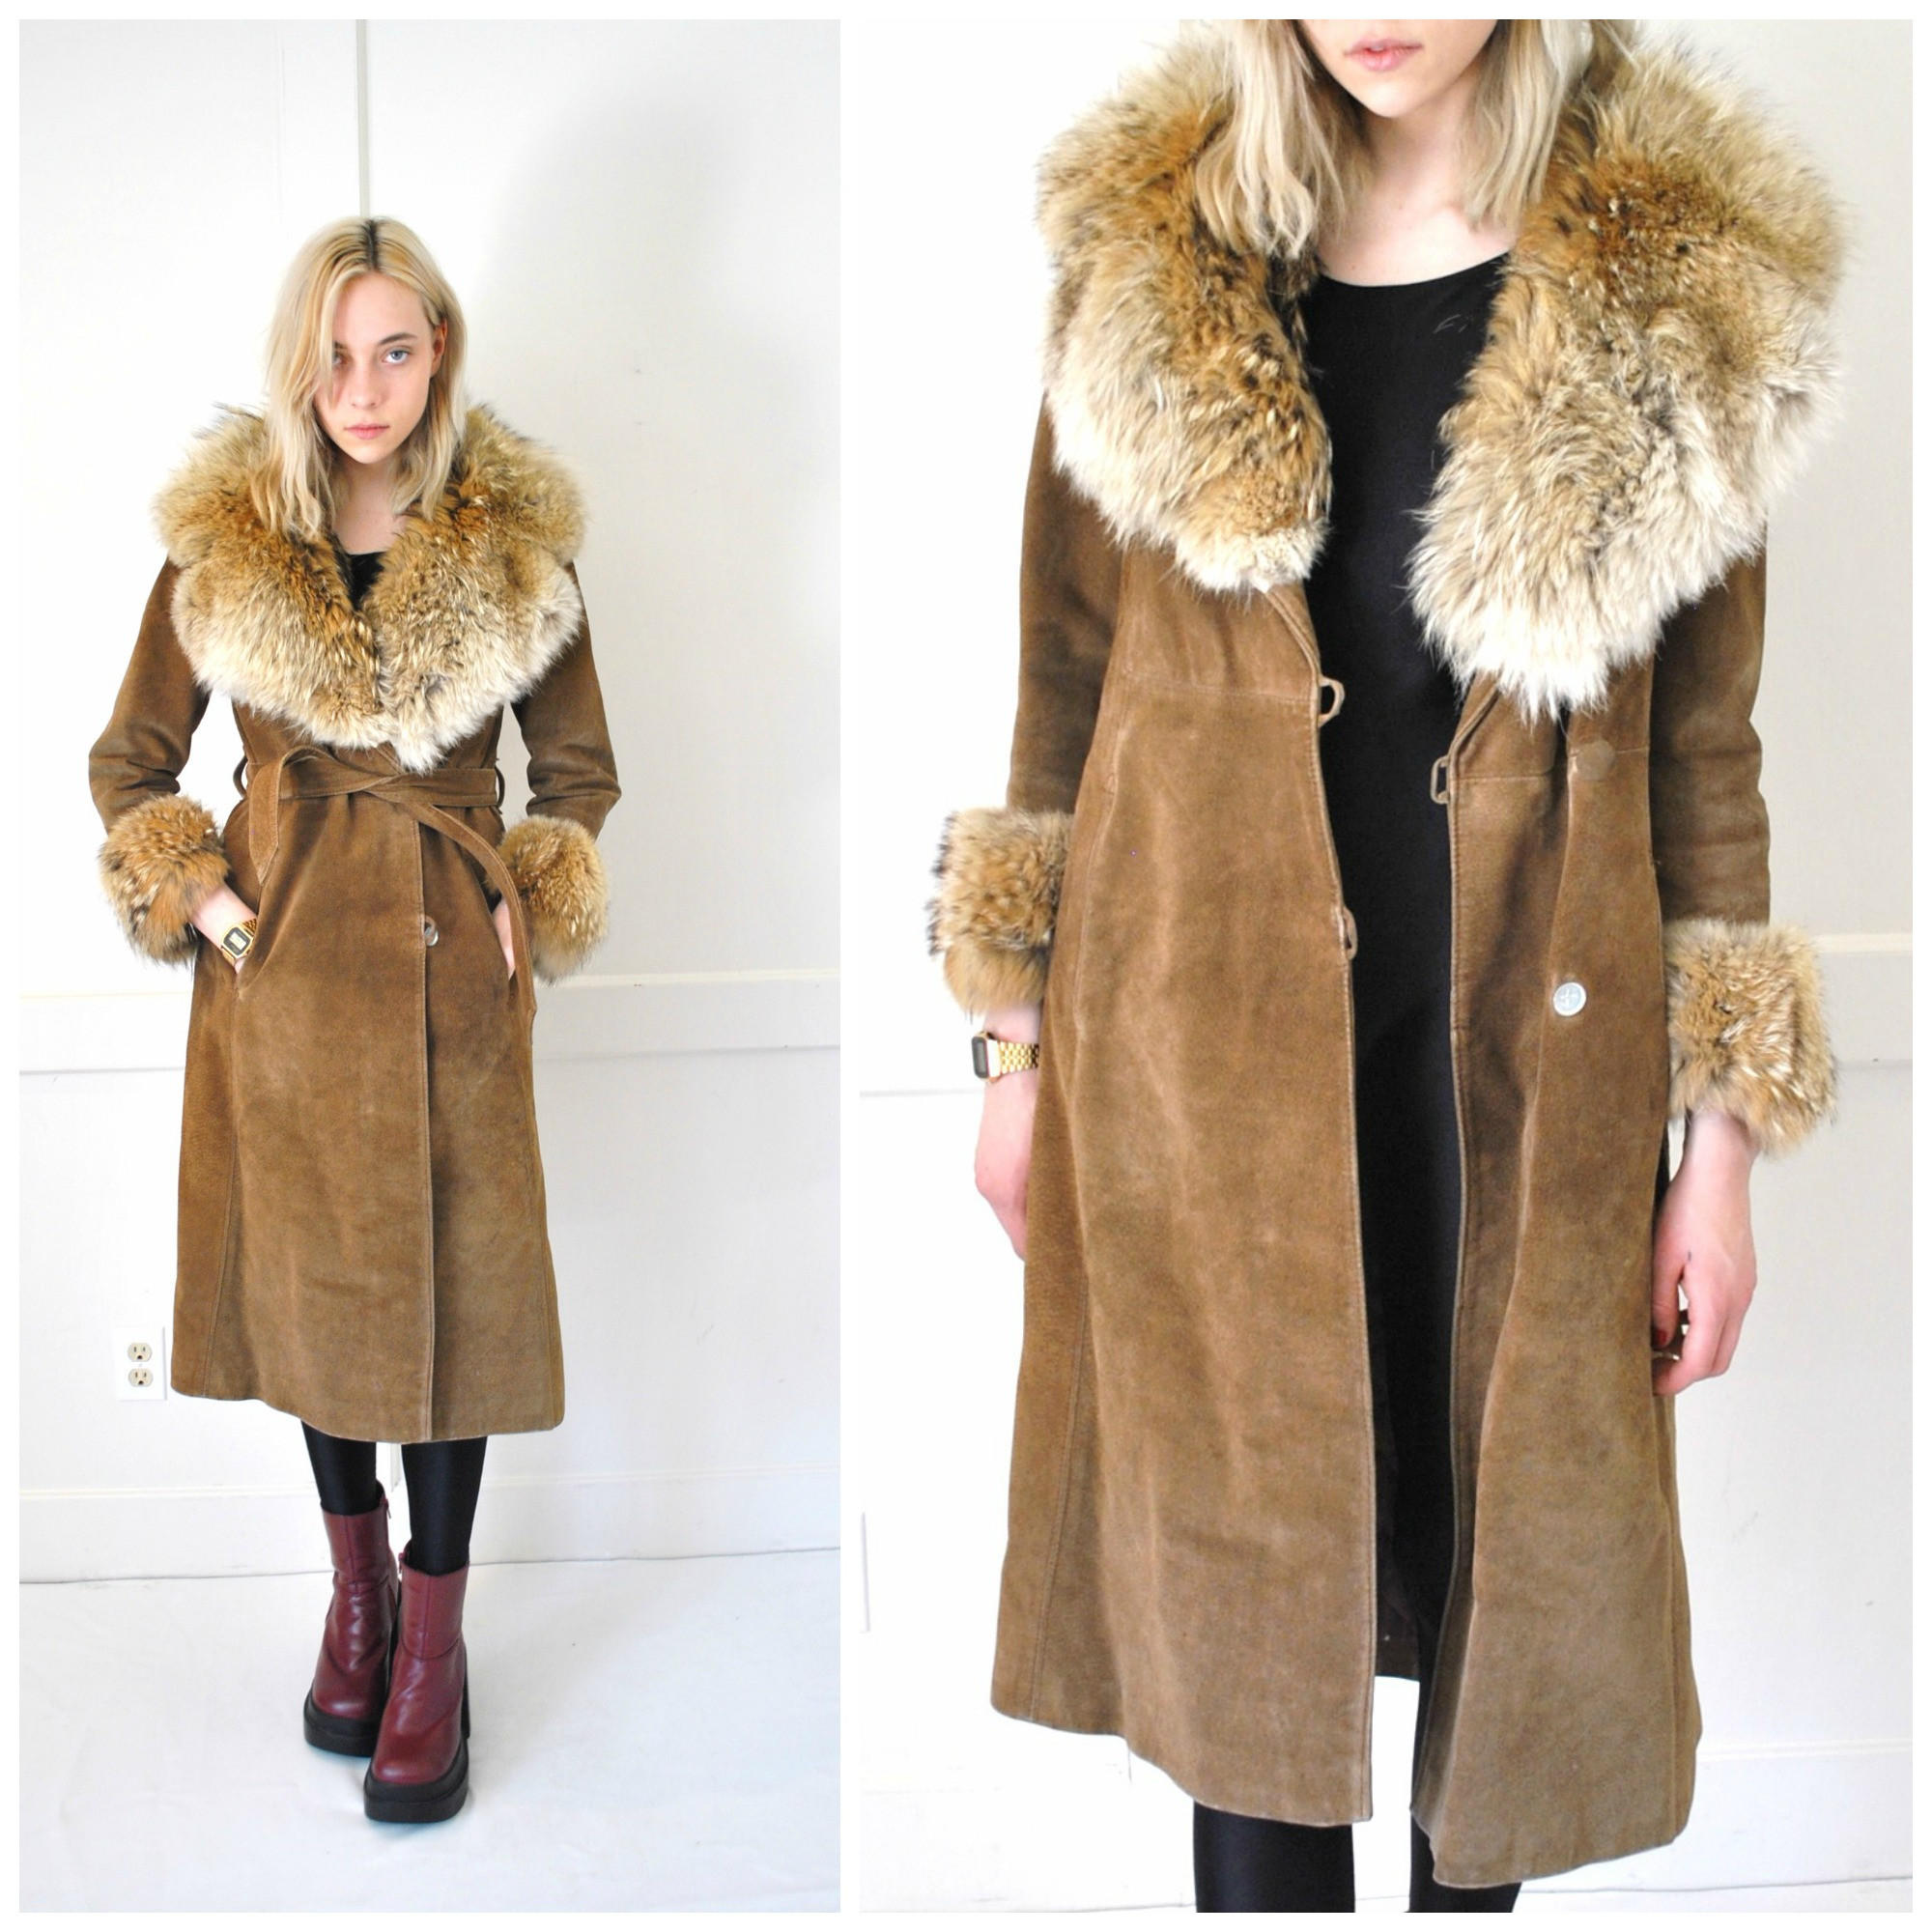 Almost Famous Faux Fur Trimmed Suede Coat: Fur Trimmed Suede Coat Vintage 1970s 70s From Http://wwww